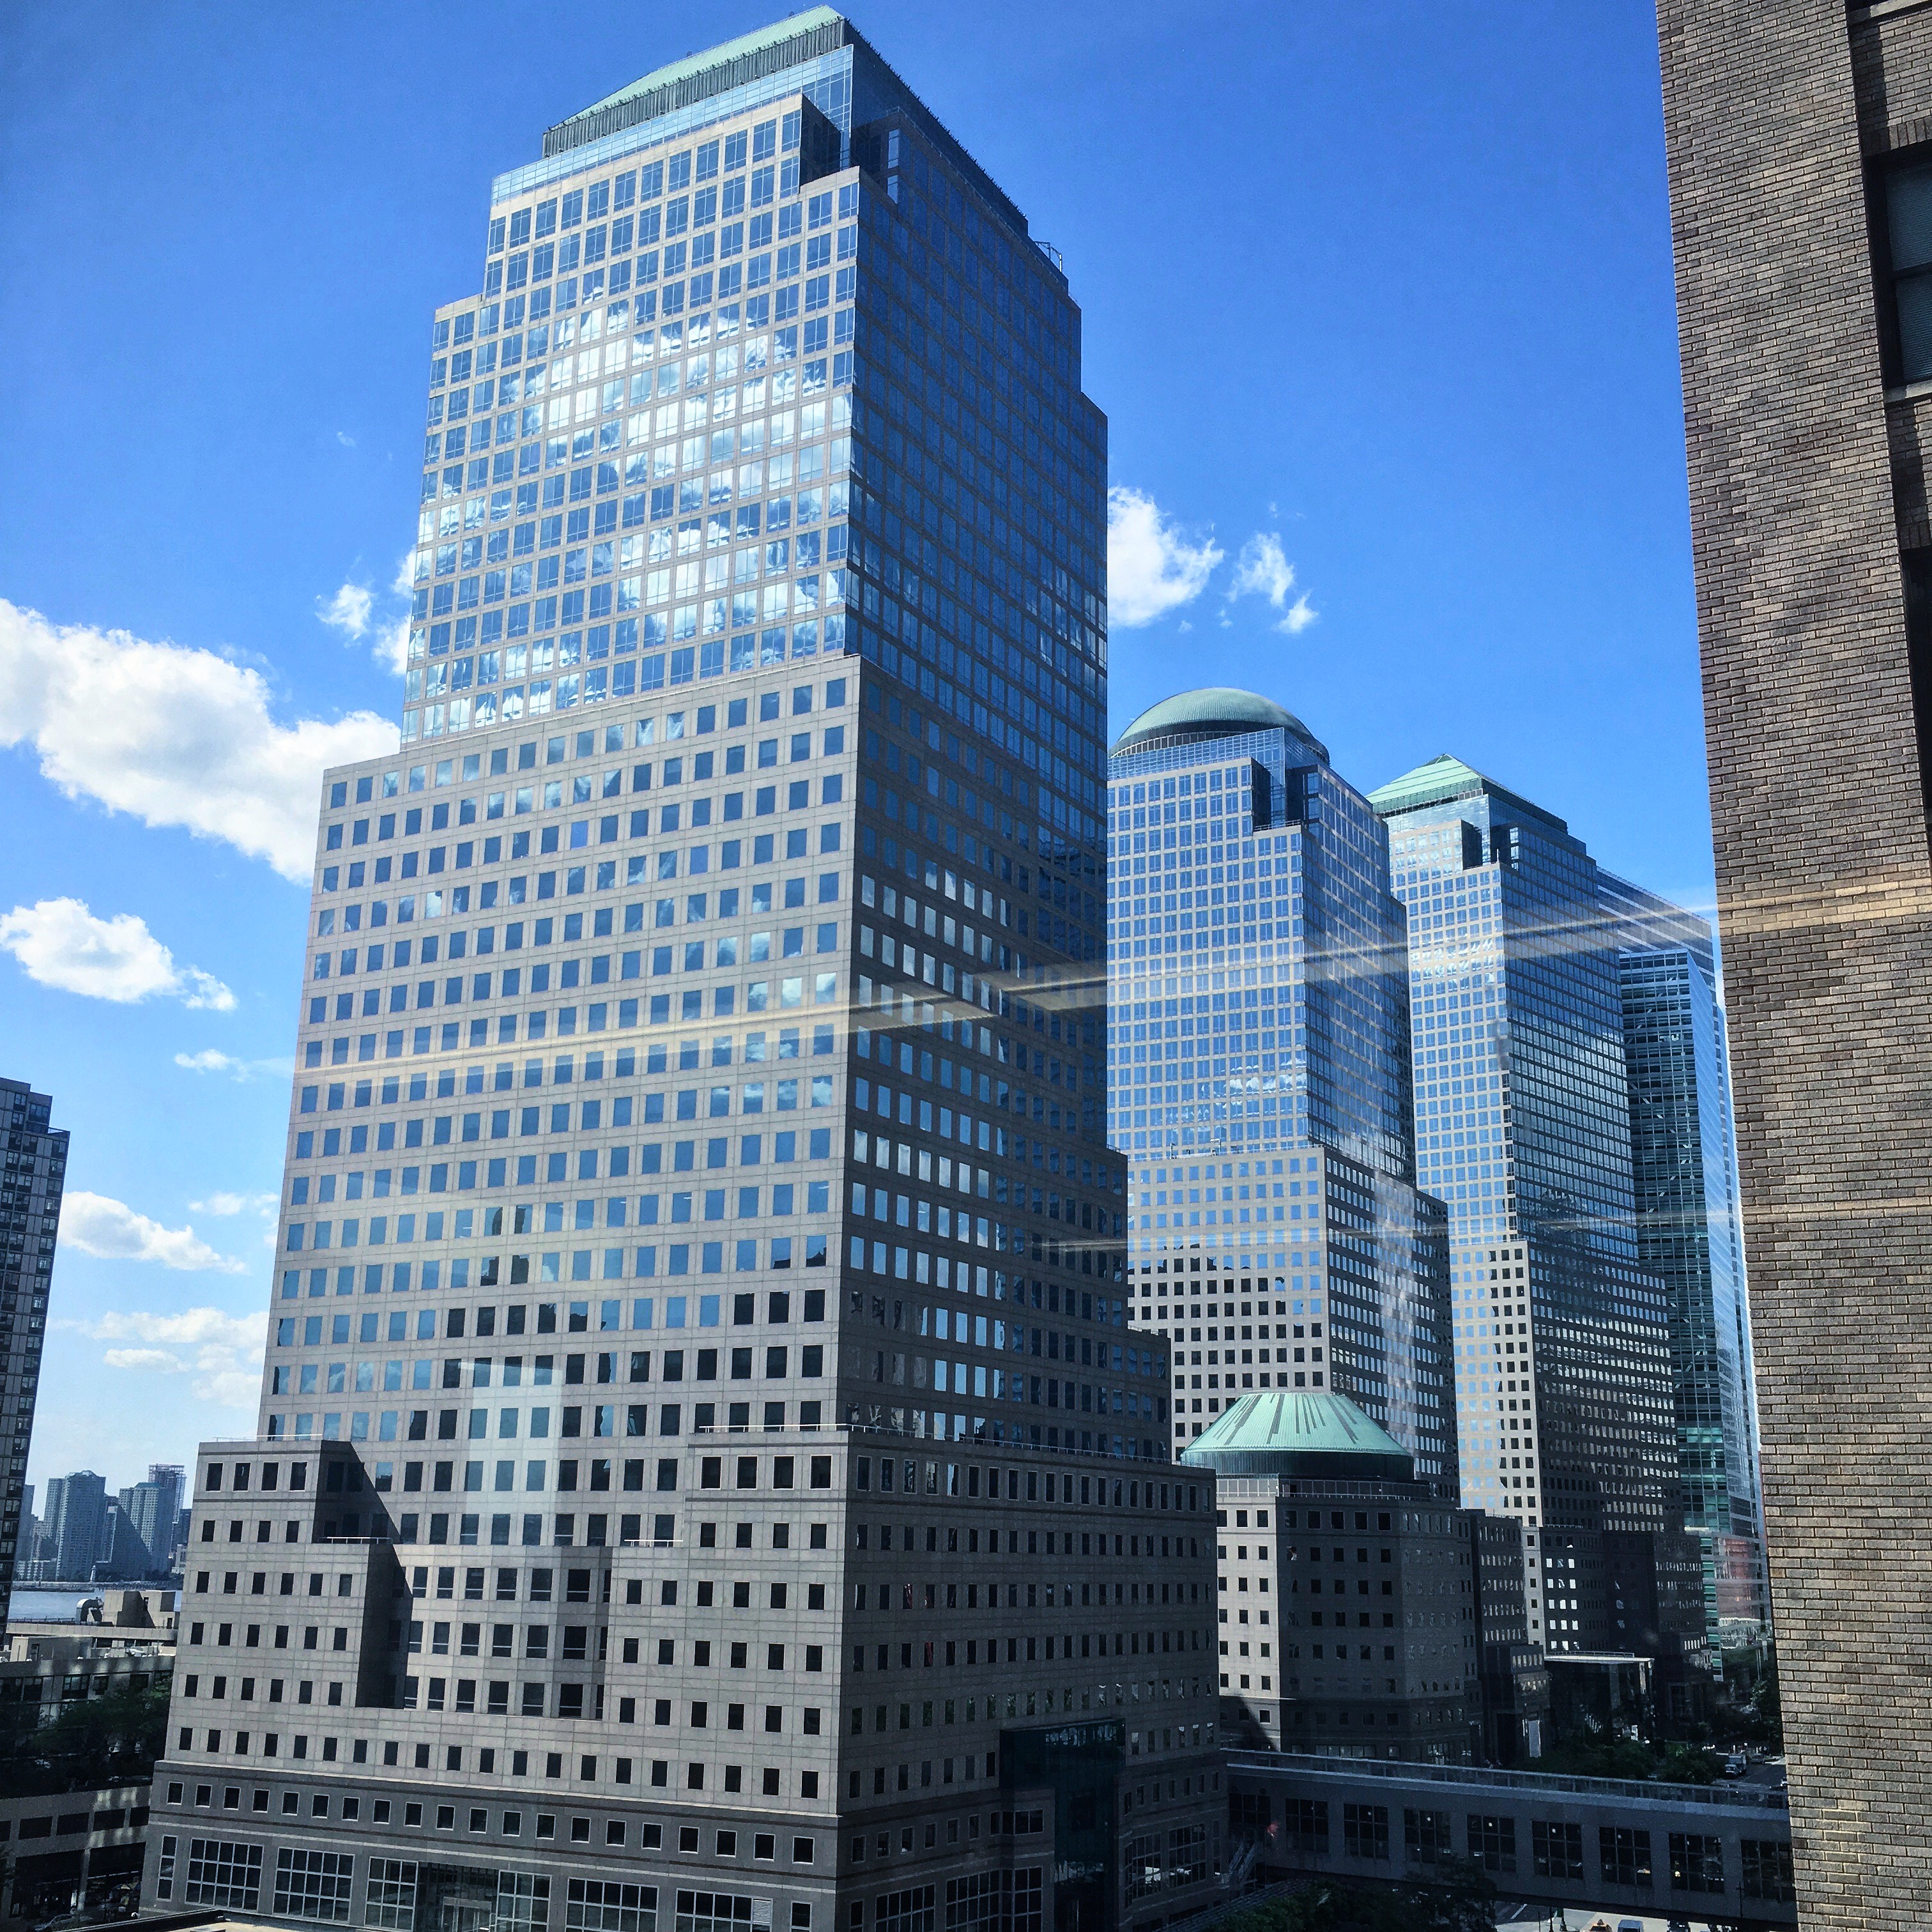 Buildings in Downtown, New York City